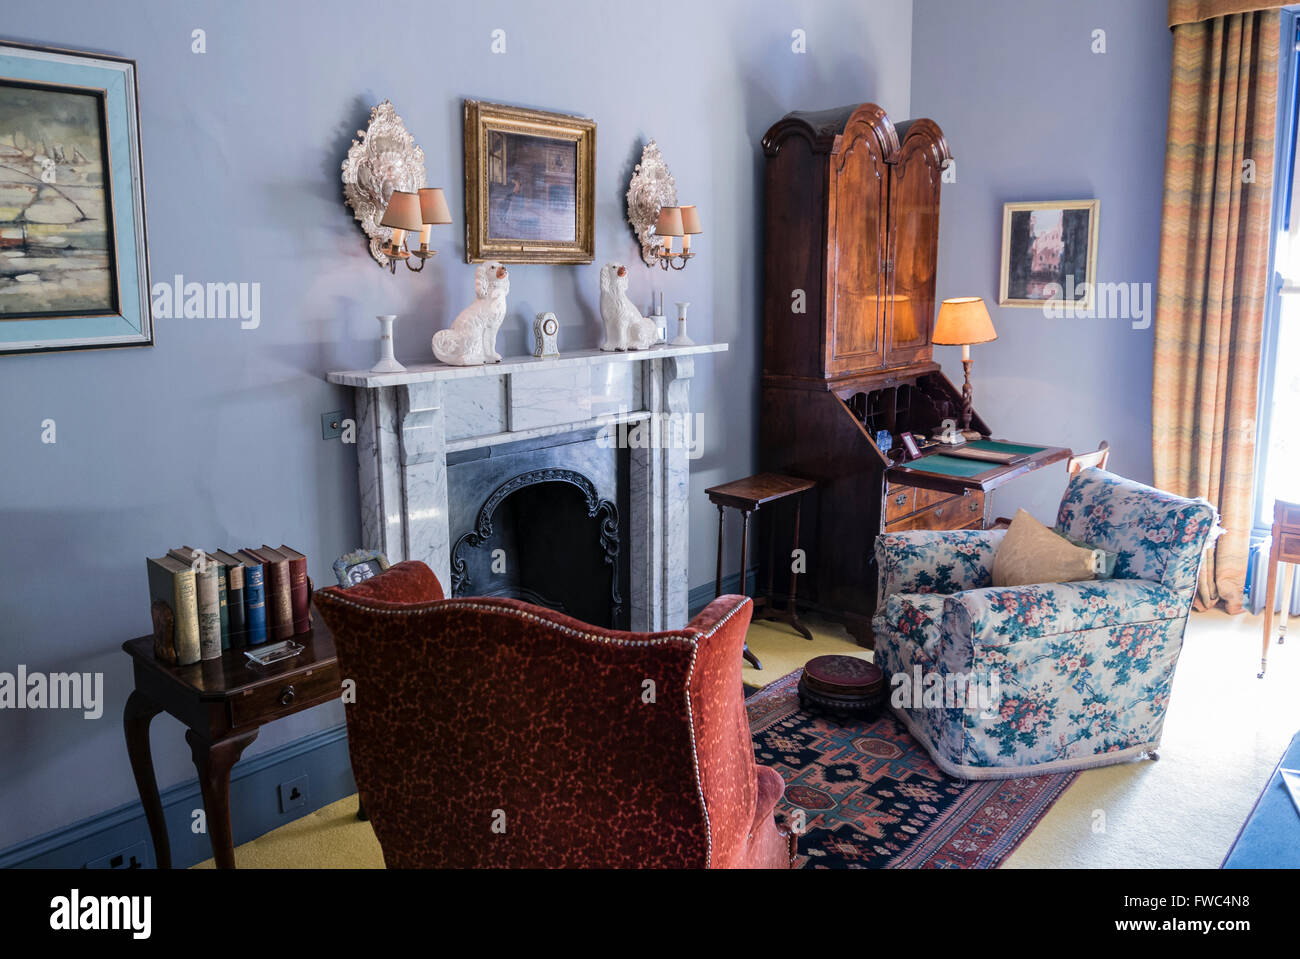 Chairs arranged around a fireplace in the living room of an old-fashioned house - Stock Image